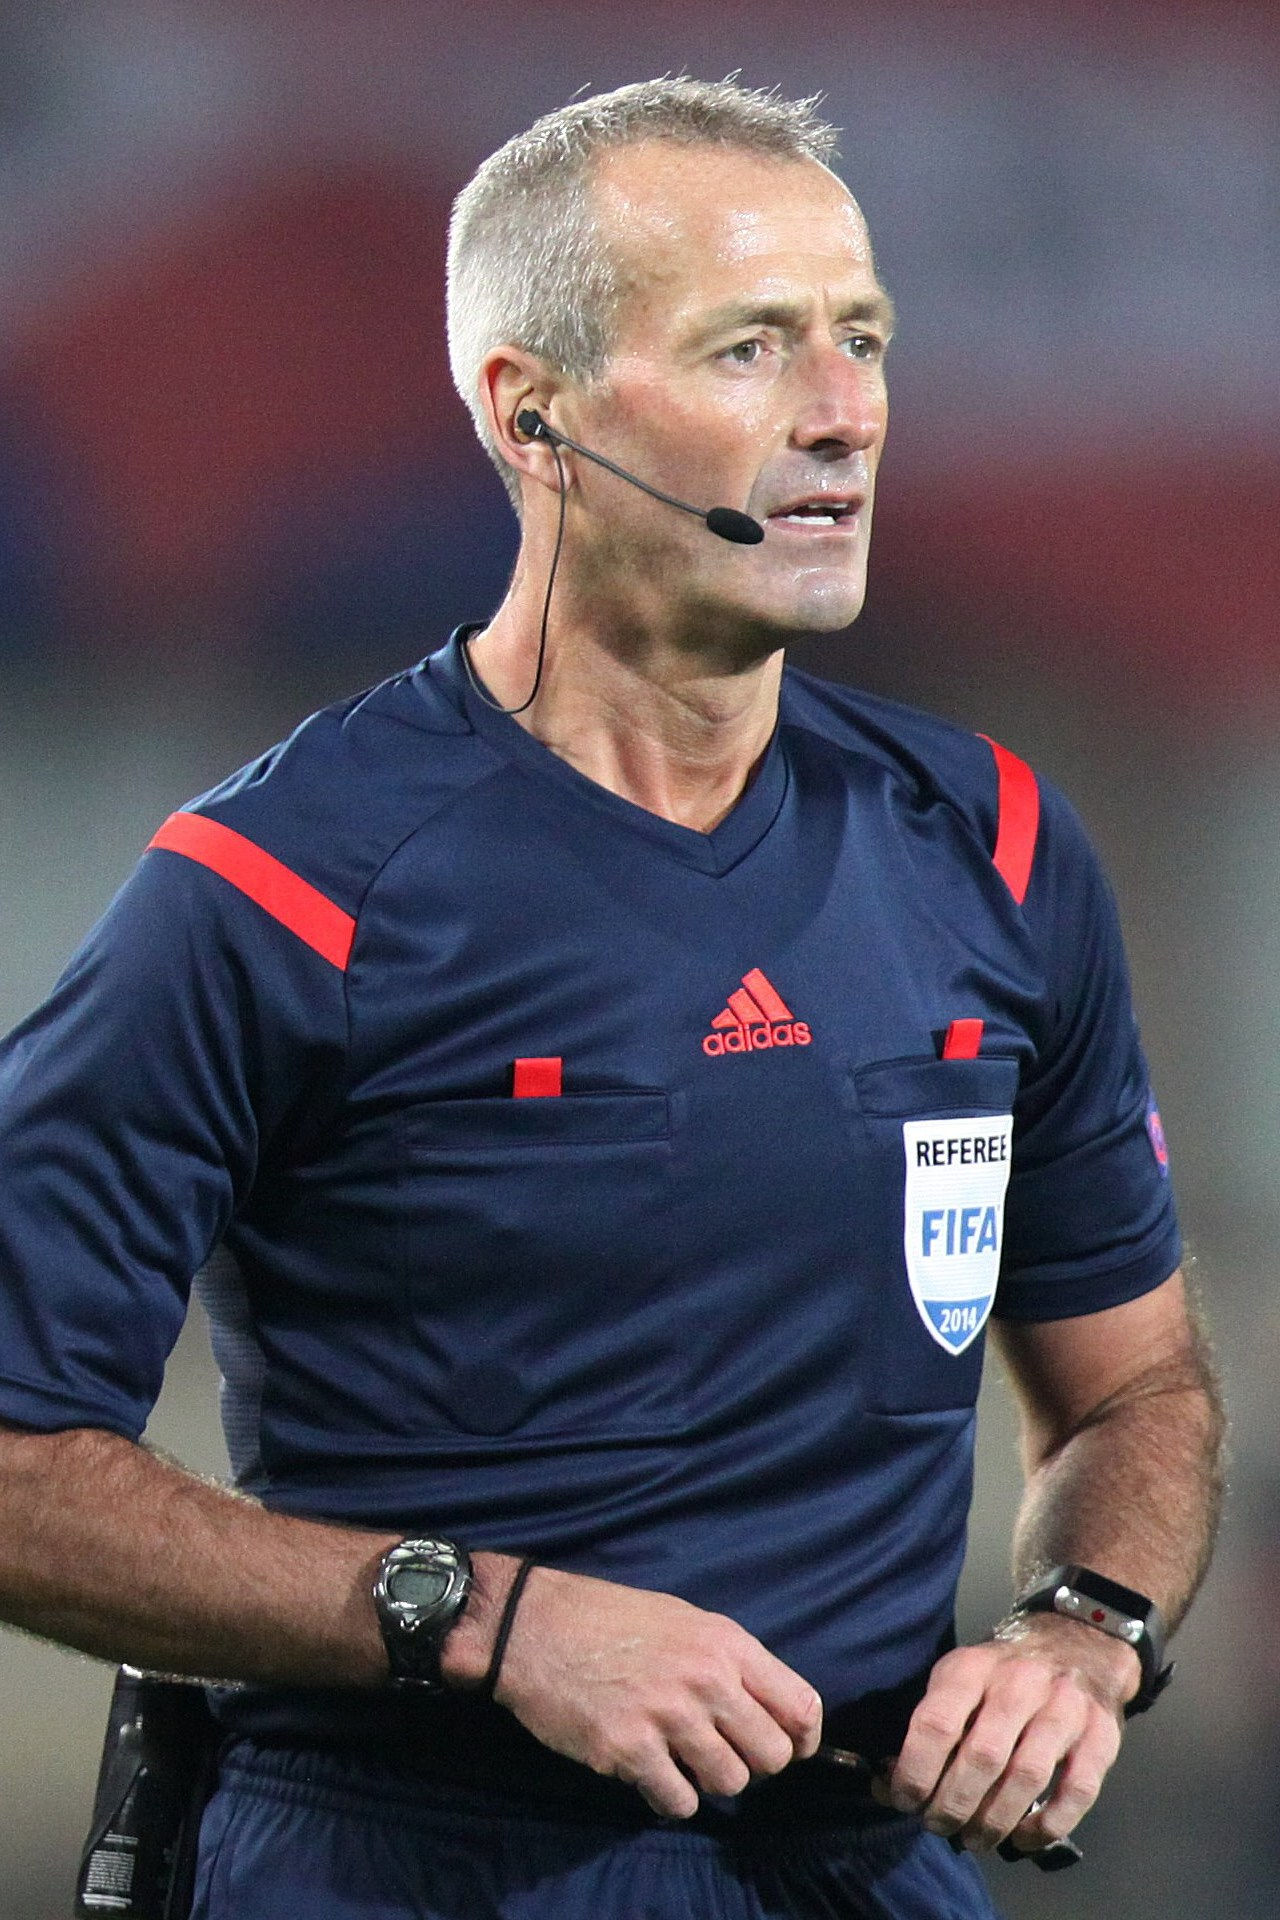 The 47-year old son of father (?) and mother(?) Martin Atkinson in 2018 photo. Martin Atkinson earned a  million dollar salary - leaving the net worth at 1 million in 2018